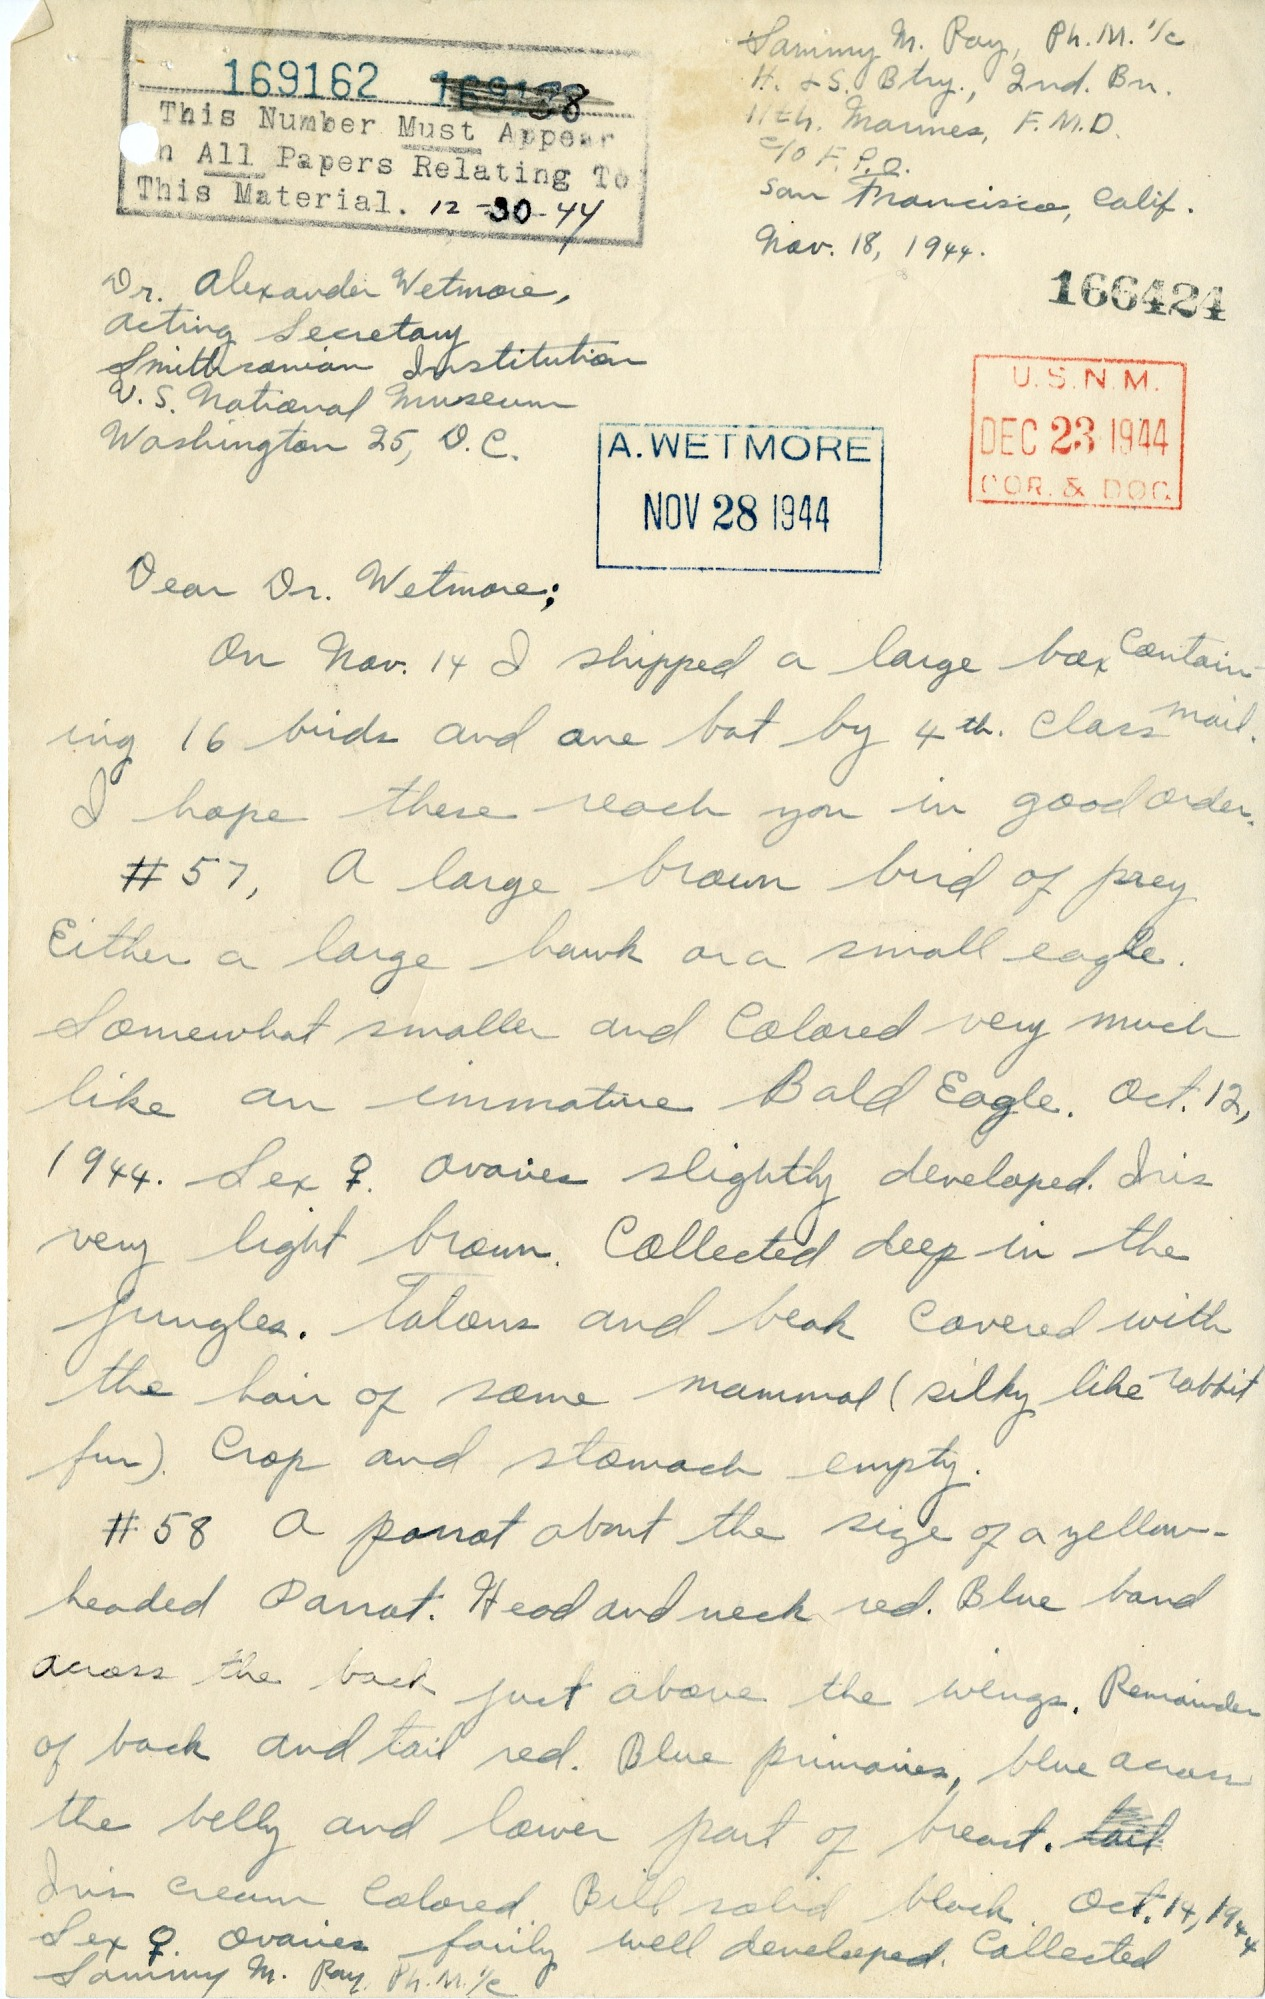 A Letter to Alexander Wetmore from Sammy Ray, November 18, 1944